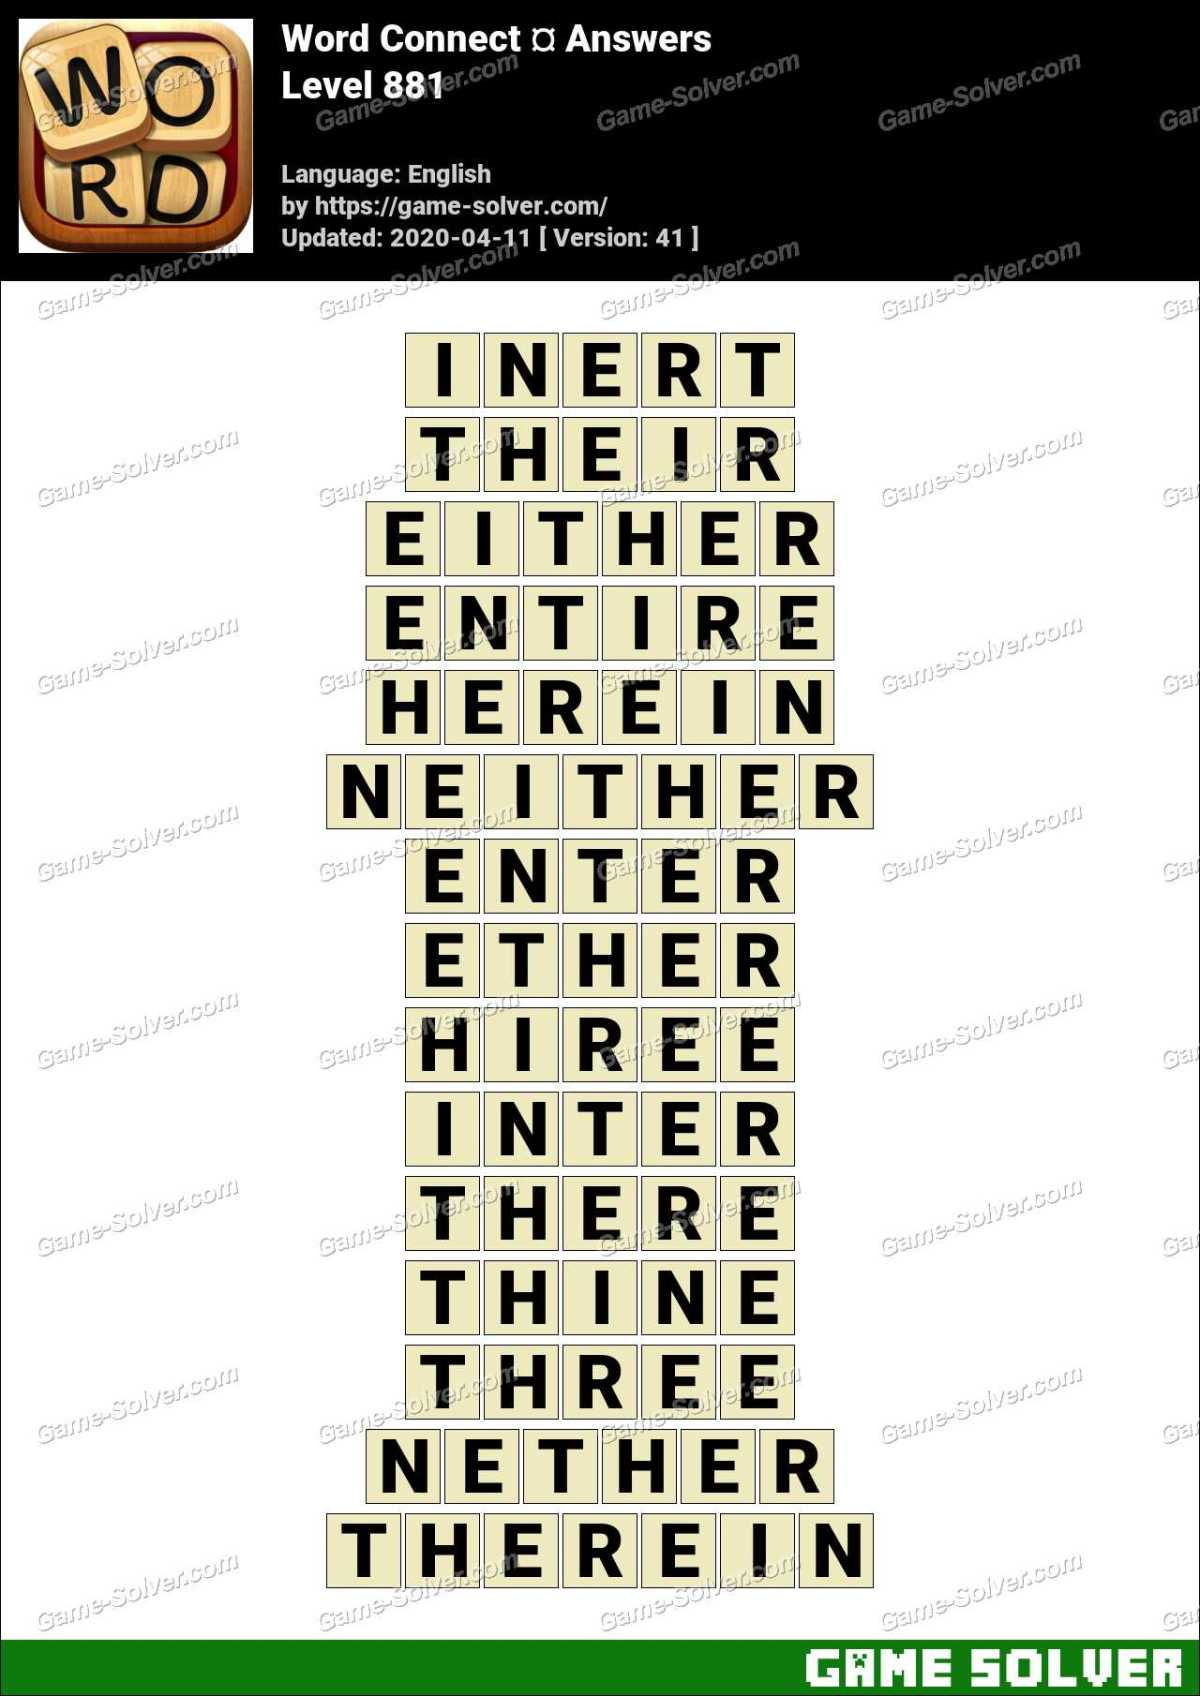 Word Connect Level 881 Answers